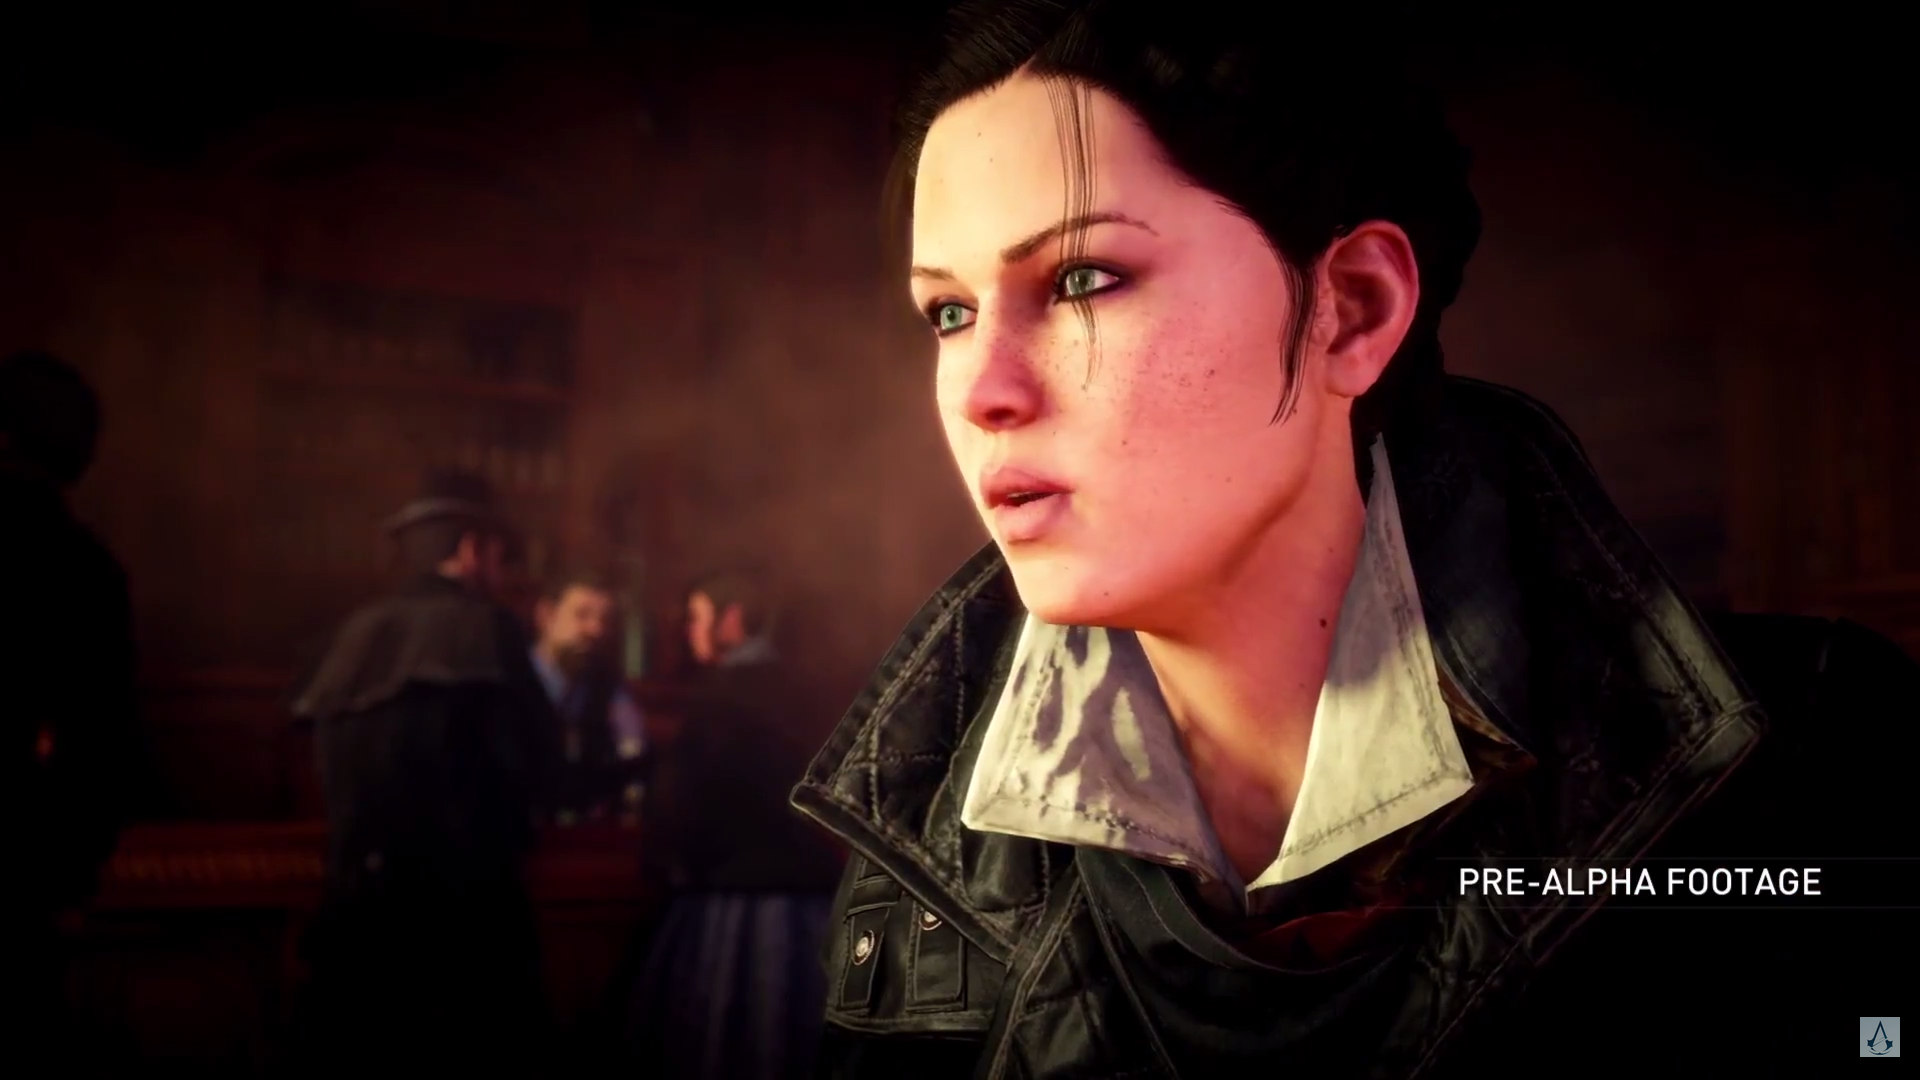 Who Is Evie Frye Meet Assassins Creed Syndicates Female Hero